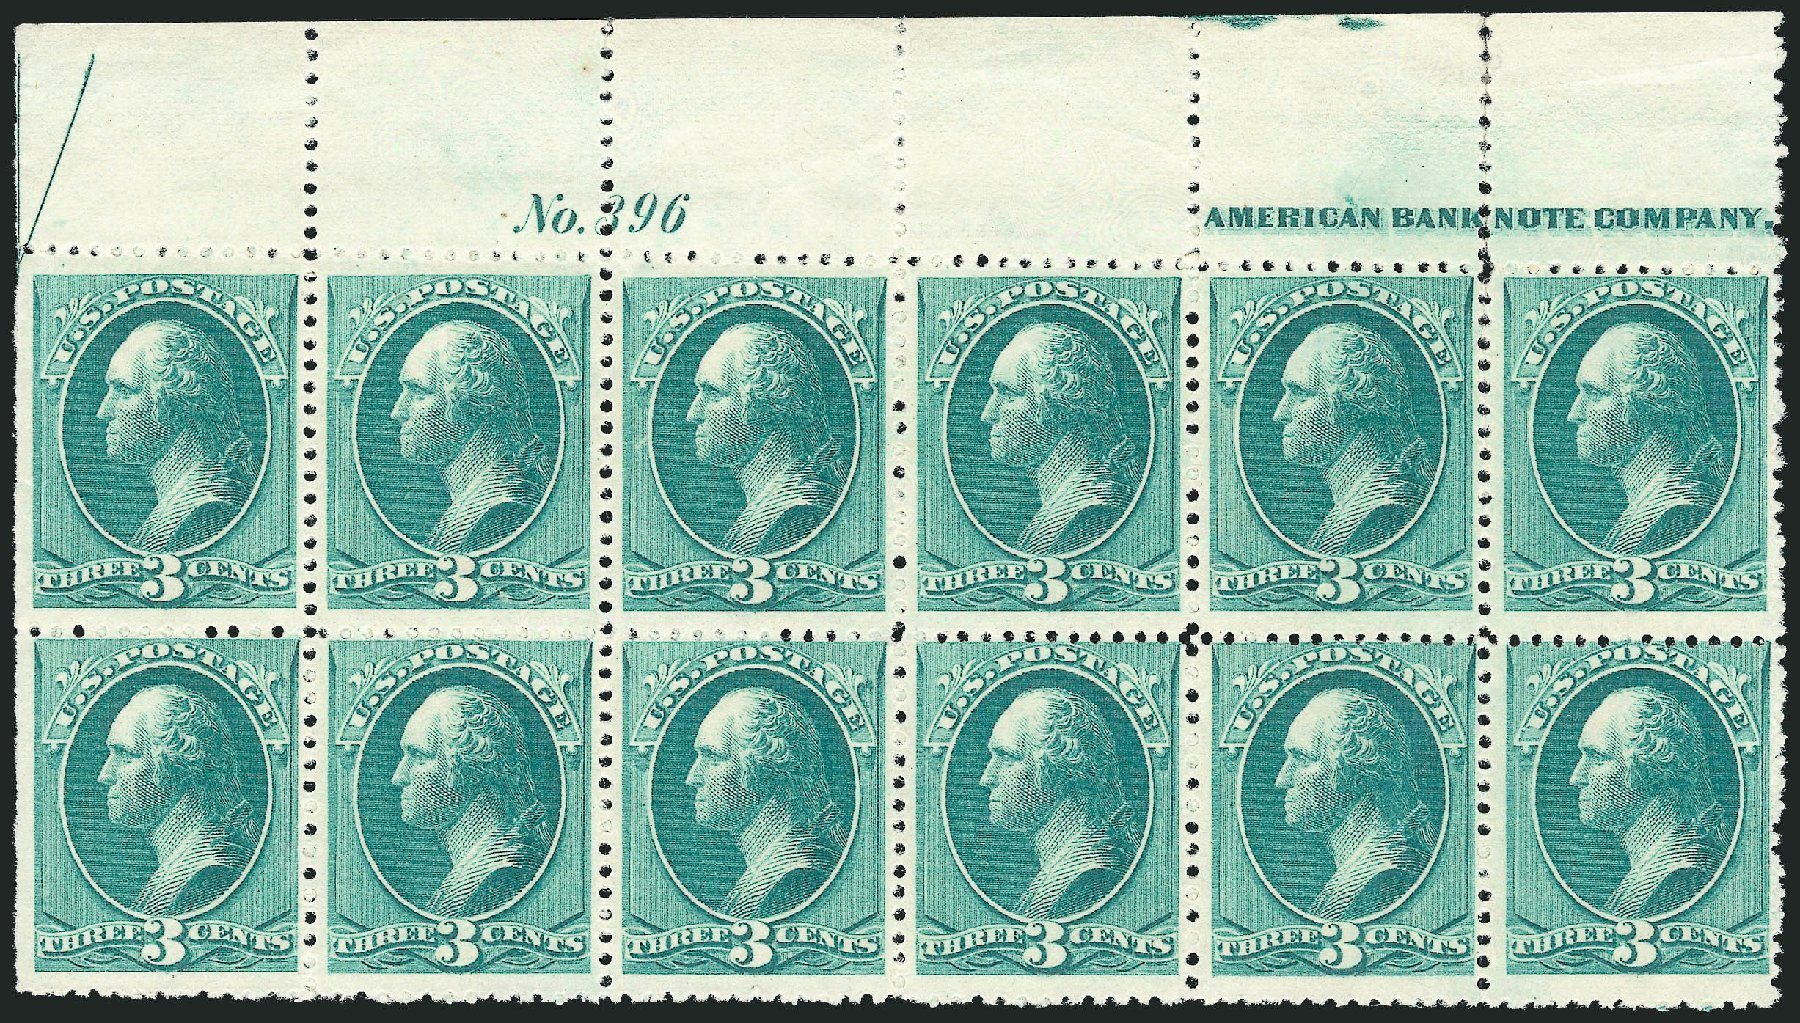 US Stamps Price Scott Catalog 207: 3c 1882 Washington. Robert Siegel Auction Galleries, Nov 2014, Sale 1084, Lot 3466